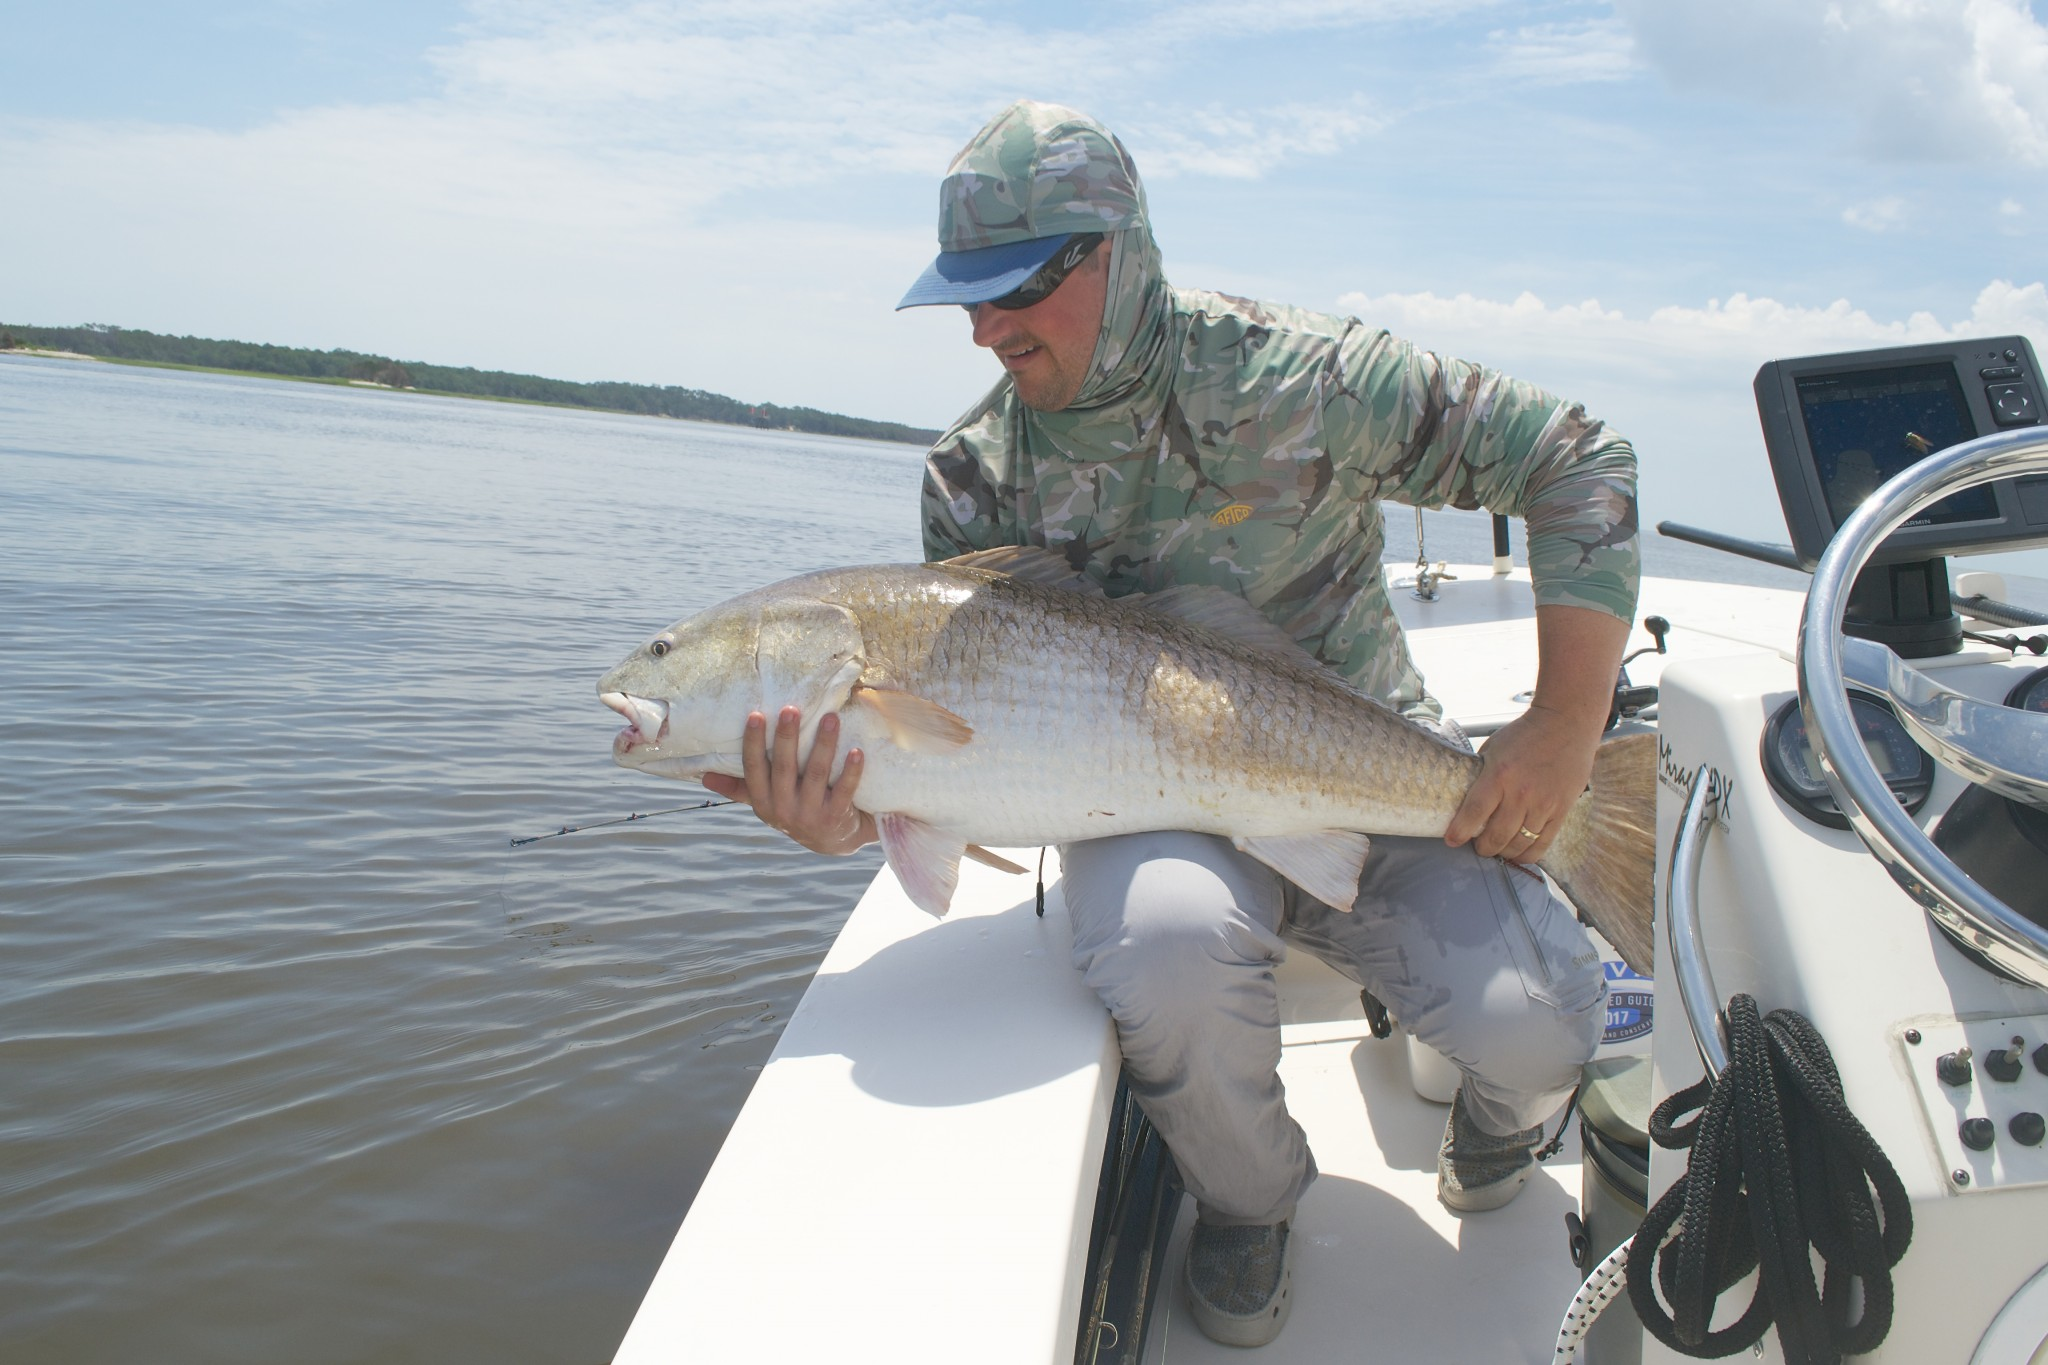 Myrtle Beach Fishing Seasons The Best Times To Fish